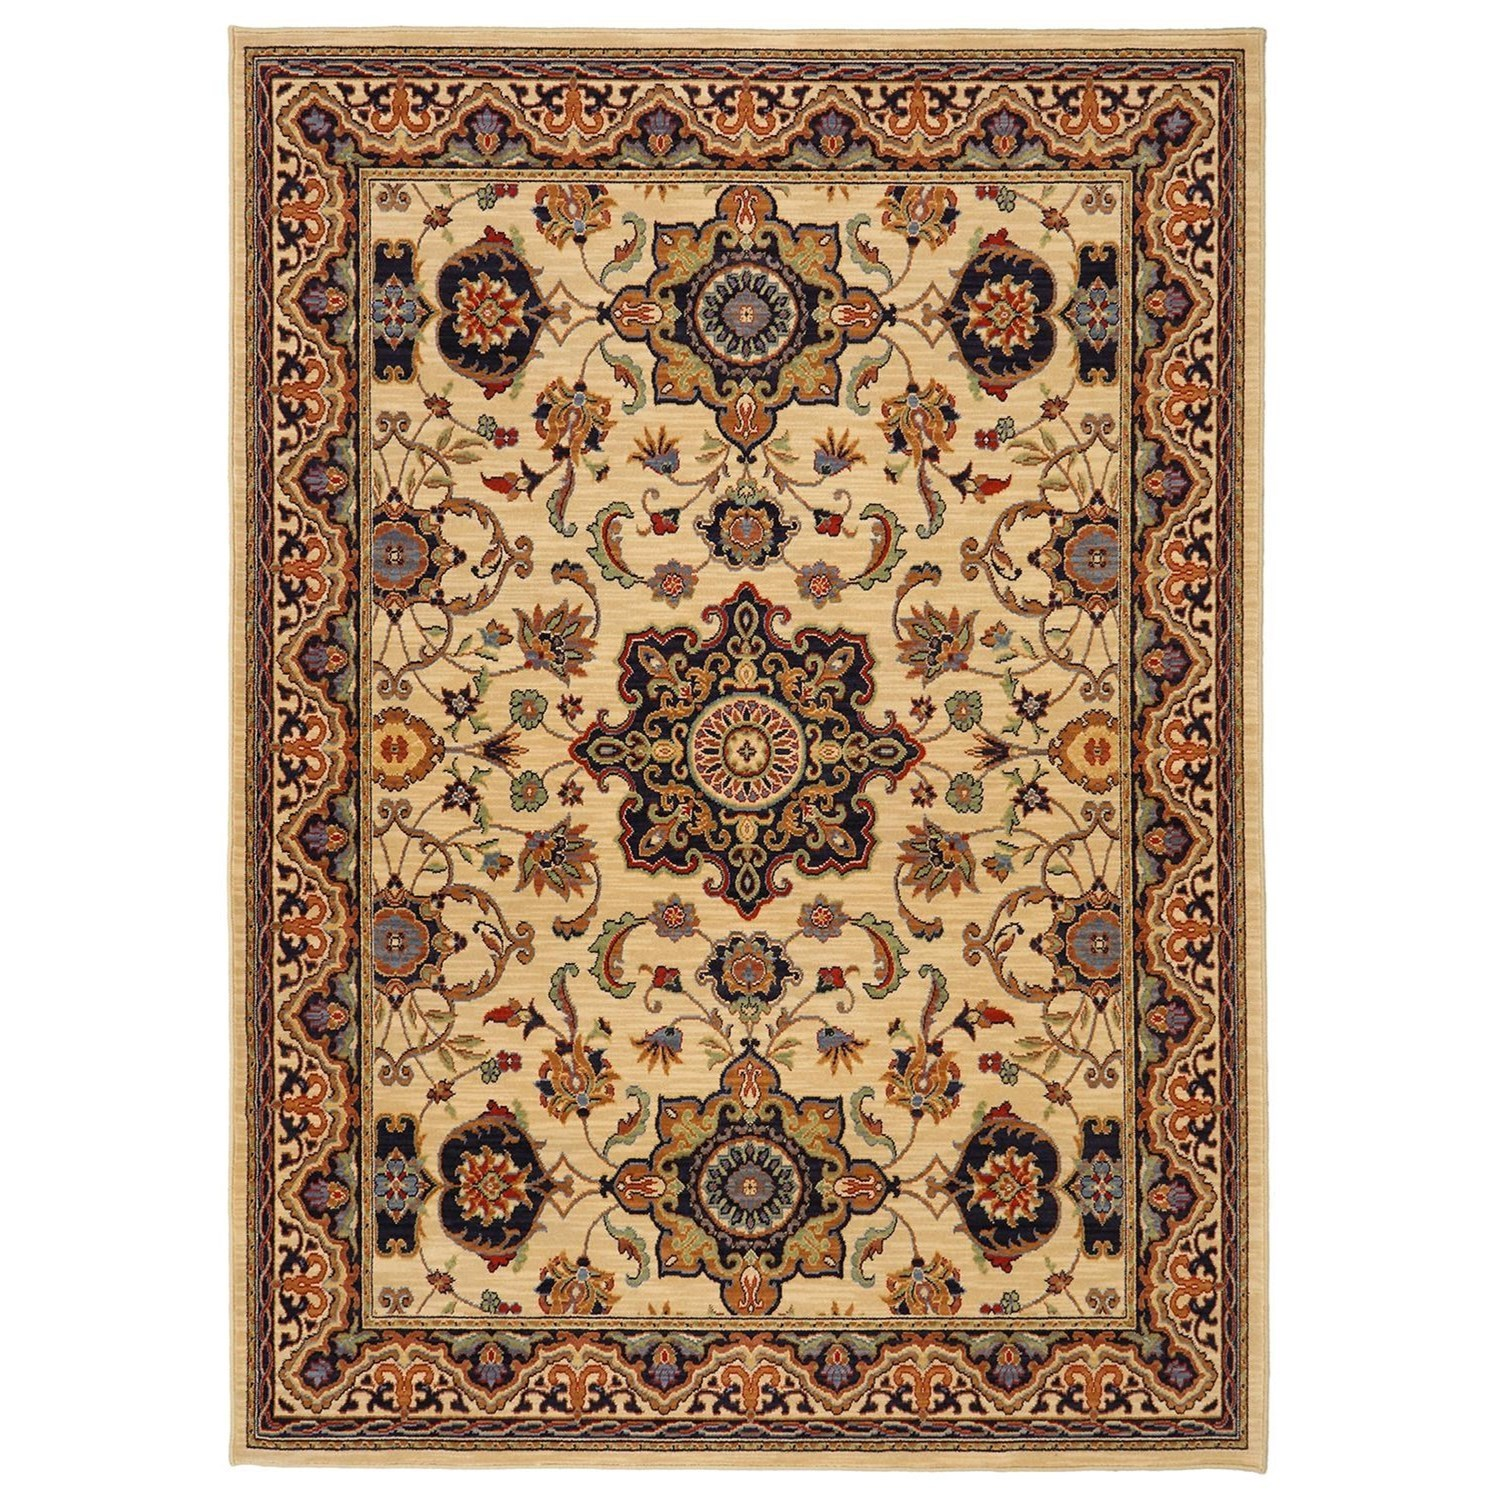 Karastan Rugs English Manor 2'6x4' Manchester Ivory Rug - Item Number: 02120 00602 030048